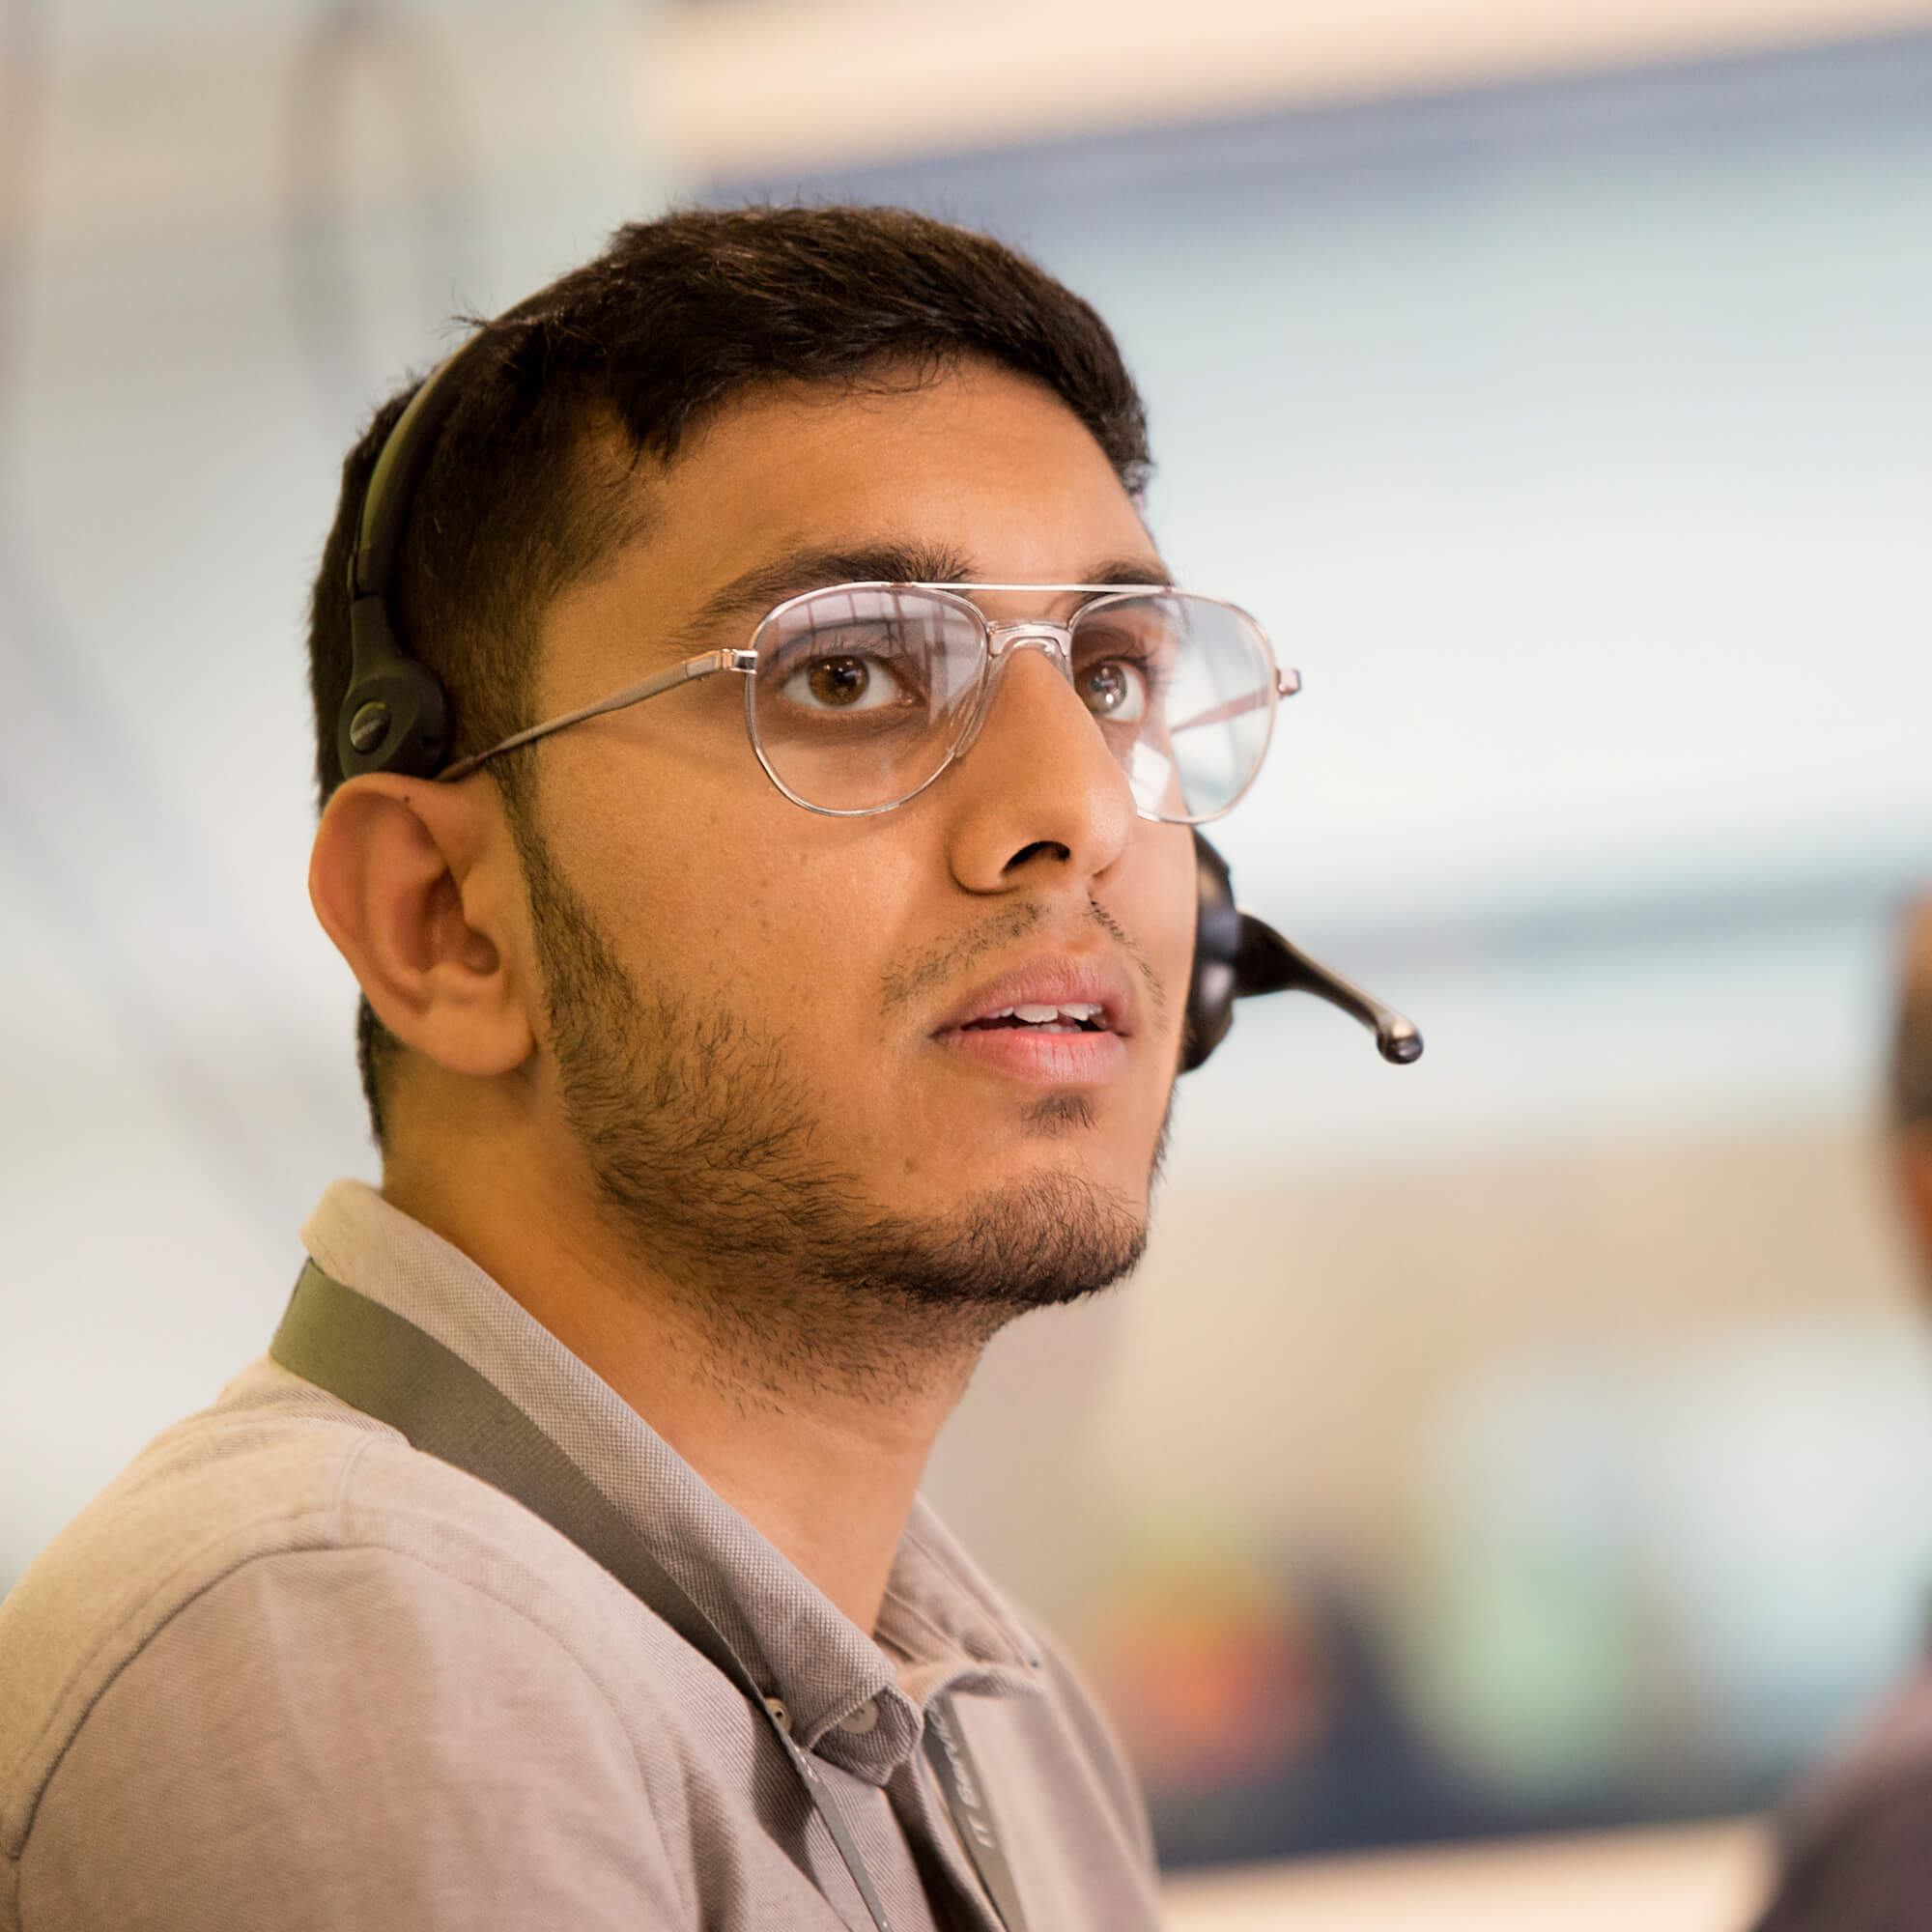 A young man with a phone headset on in the IT Service Centre.